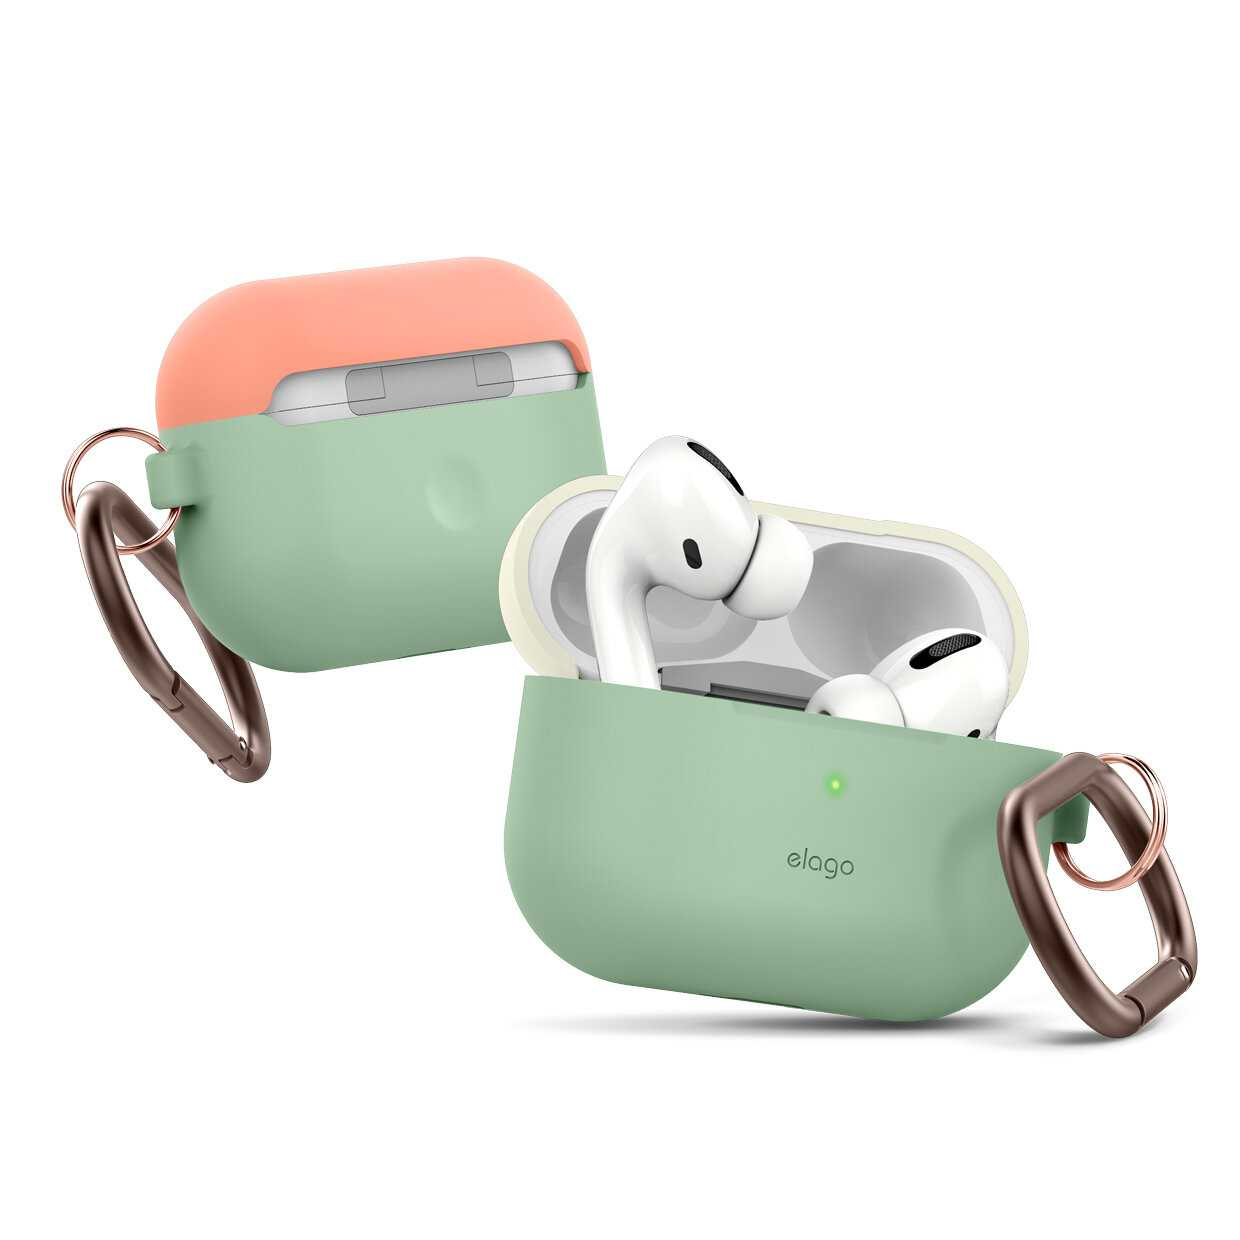 Elago Duo Hang Case for Apple Airpods Pro - Top-Classic White / Peach, Bottom-Pastel Green